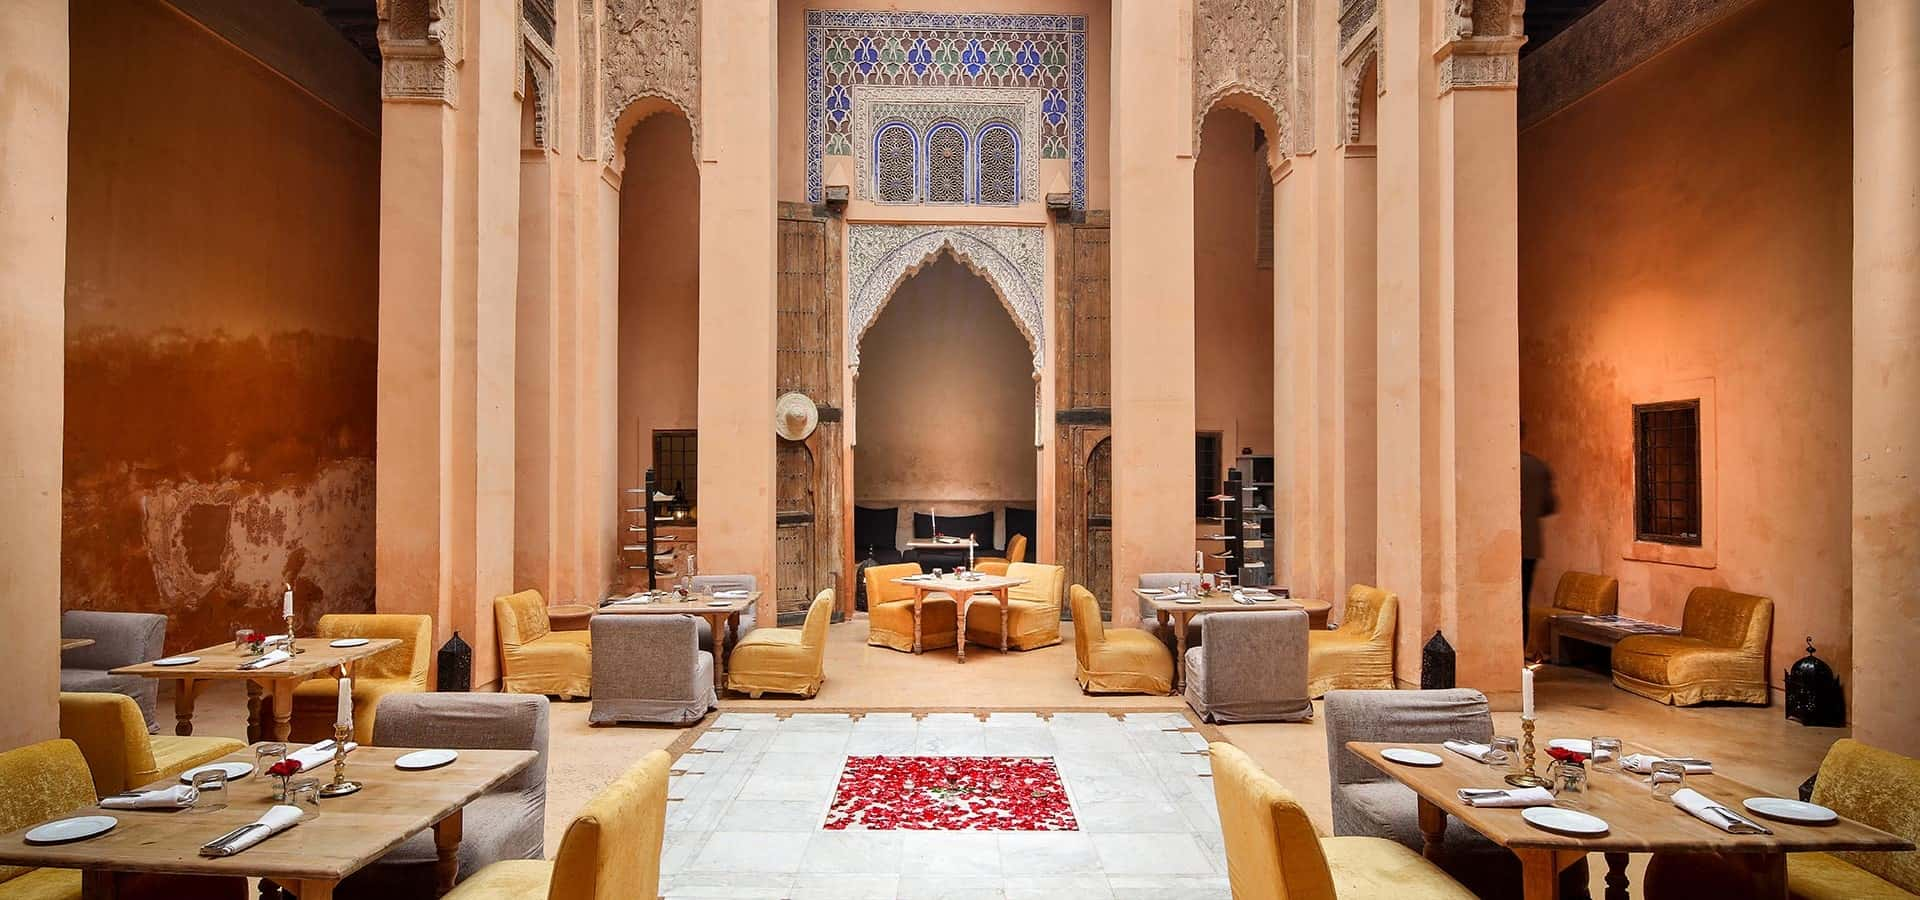 Salon Marrakech Exceptional Riads And Restaurants In The Medinas Of Marrakech And Fez